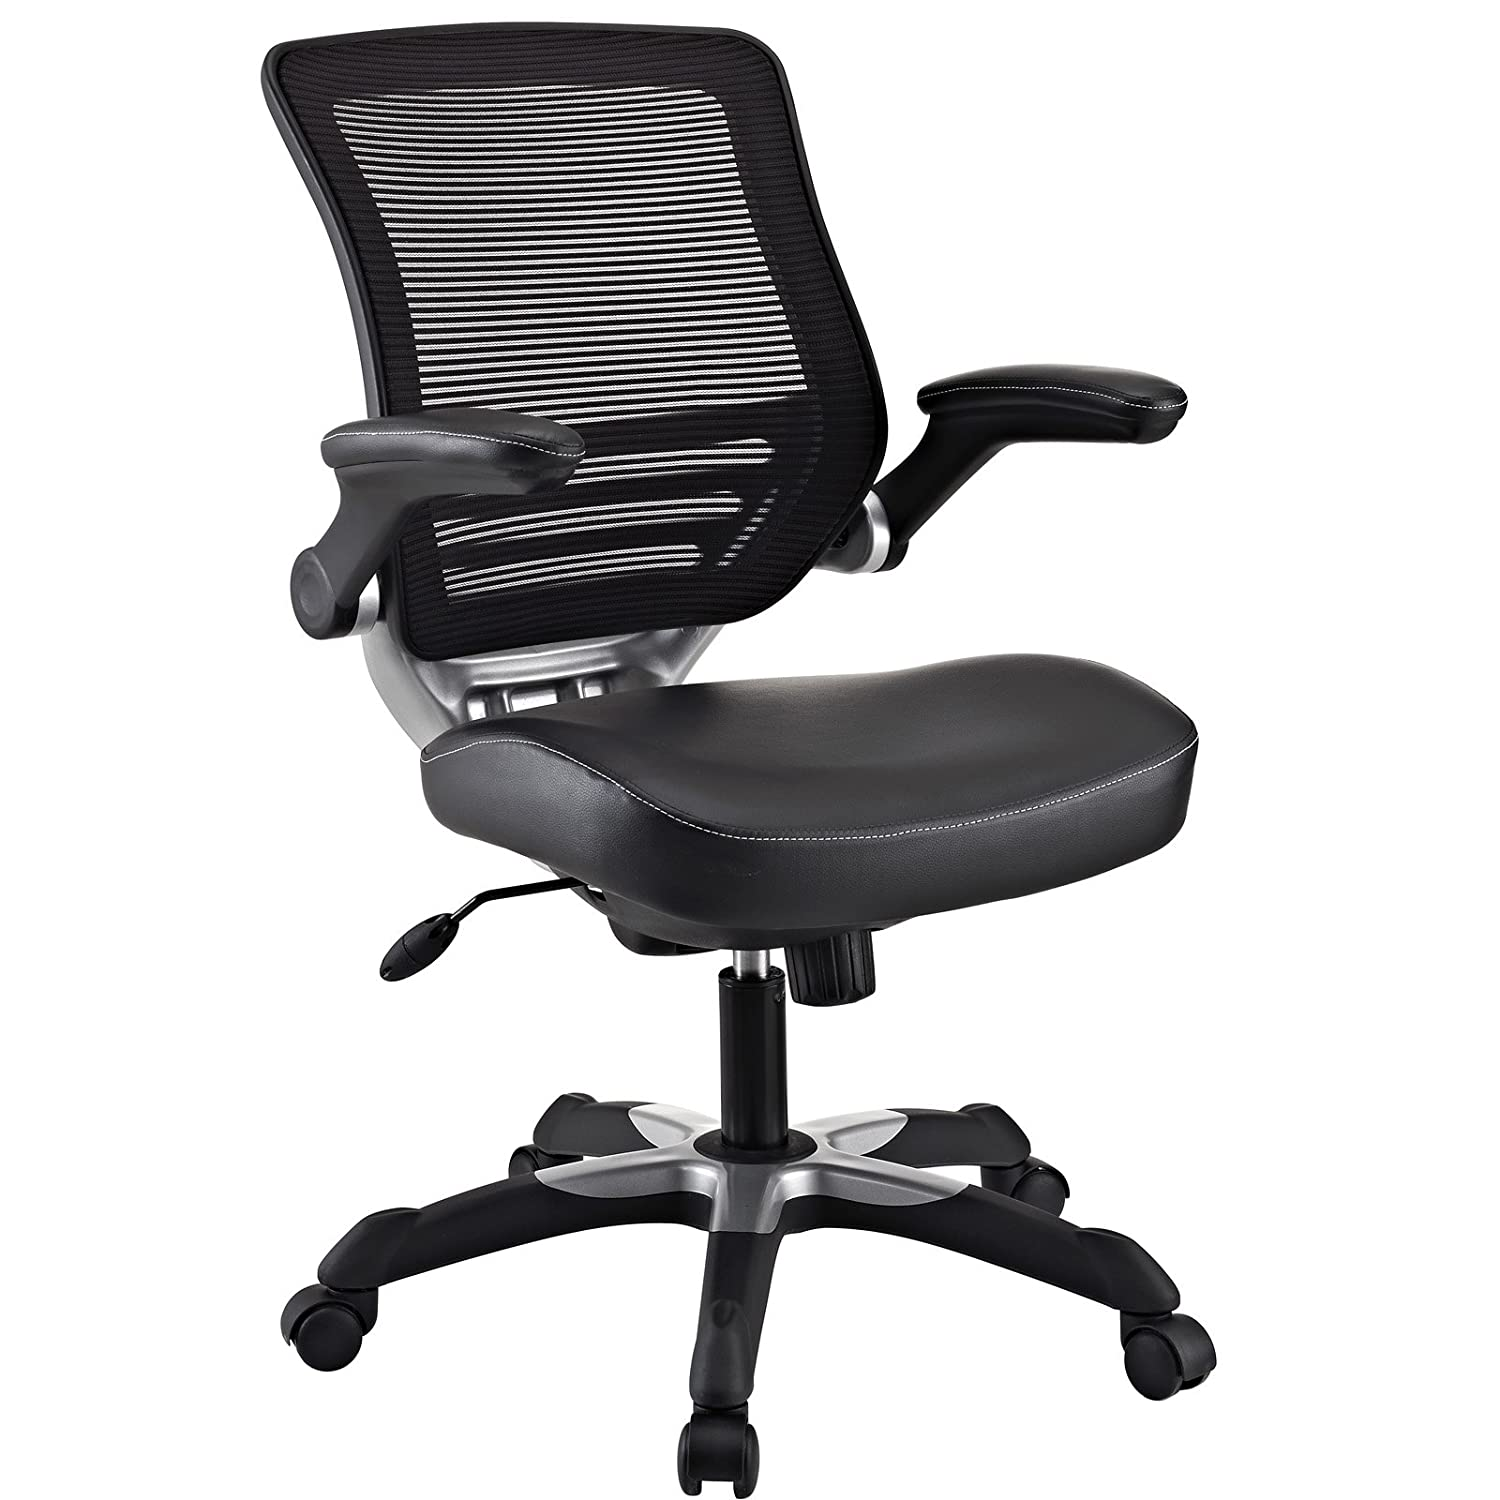 The Back Store - sillas de oficina de calidad, sillas reclinables ergonómicos y confortables ()